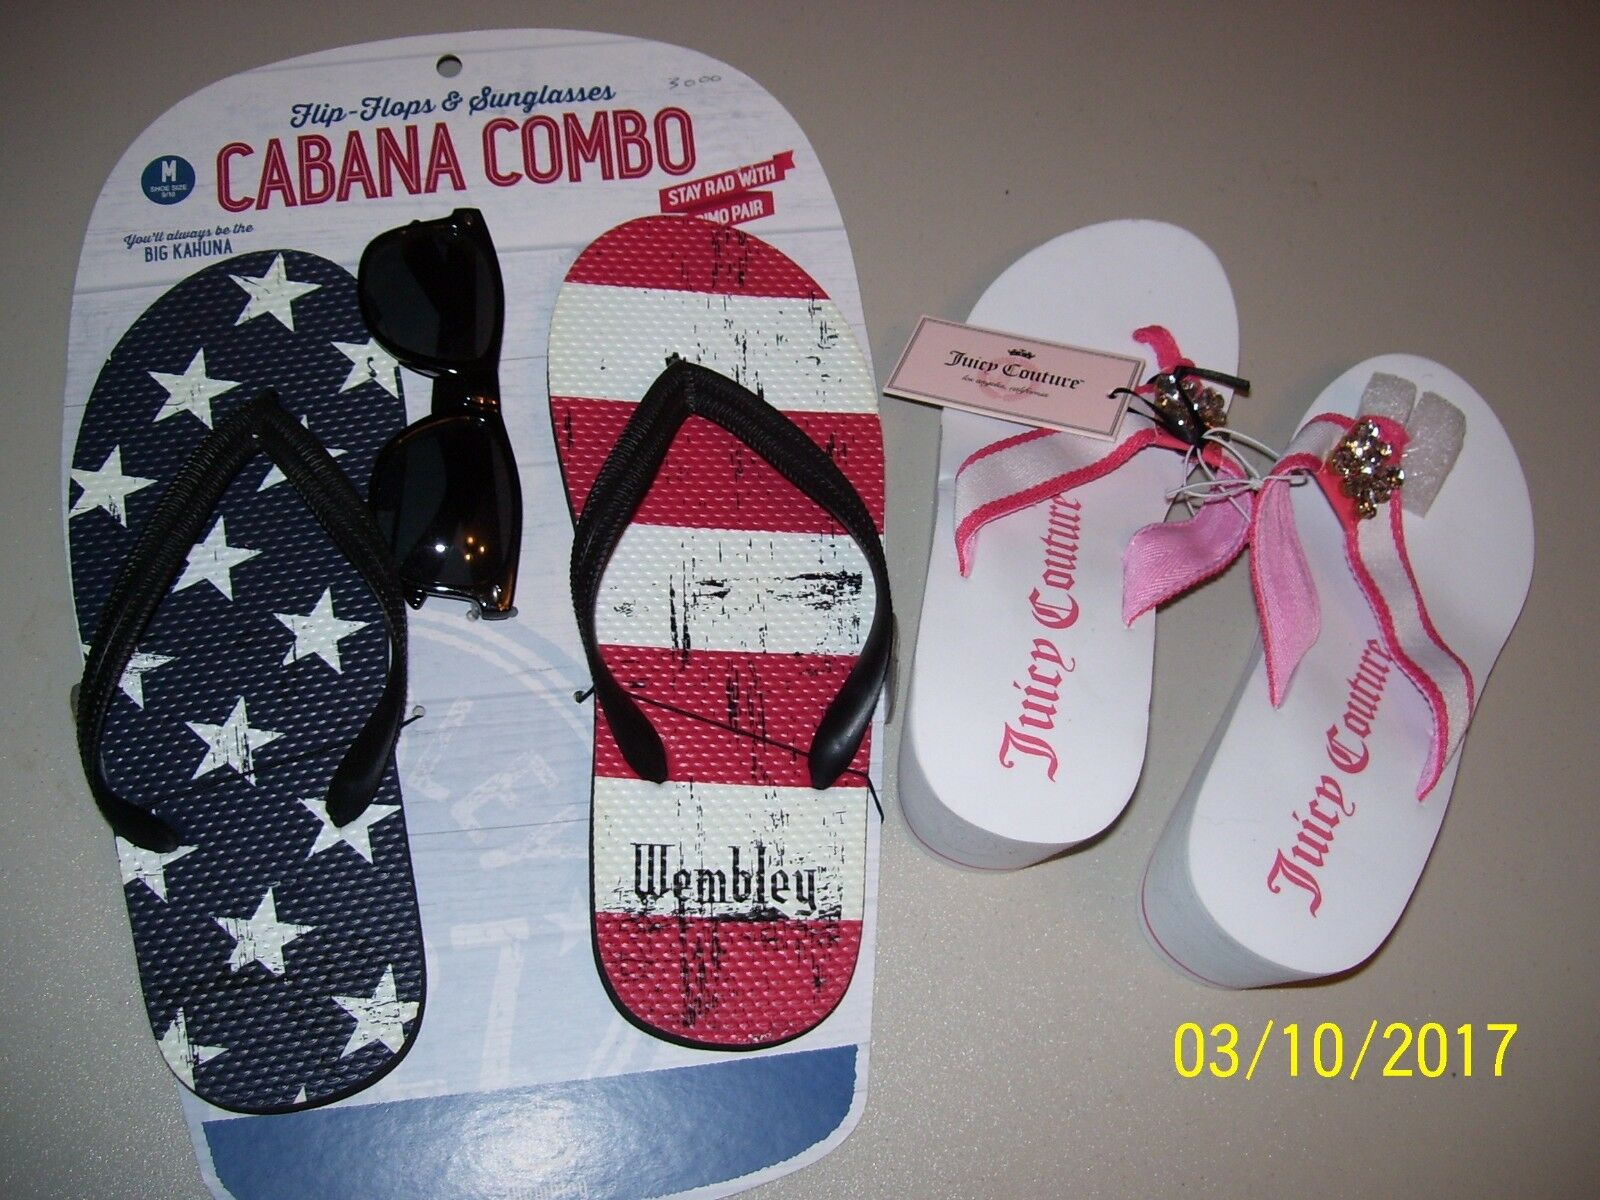 NEW MENS FLIP FLOPS & SUNGLASSES, WEMBLEY SIZE 9-10 + LADIES JUICY COUTURE 7-8